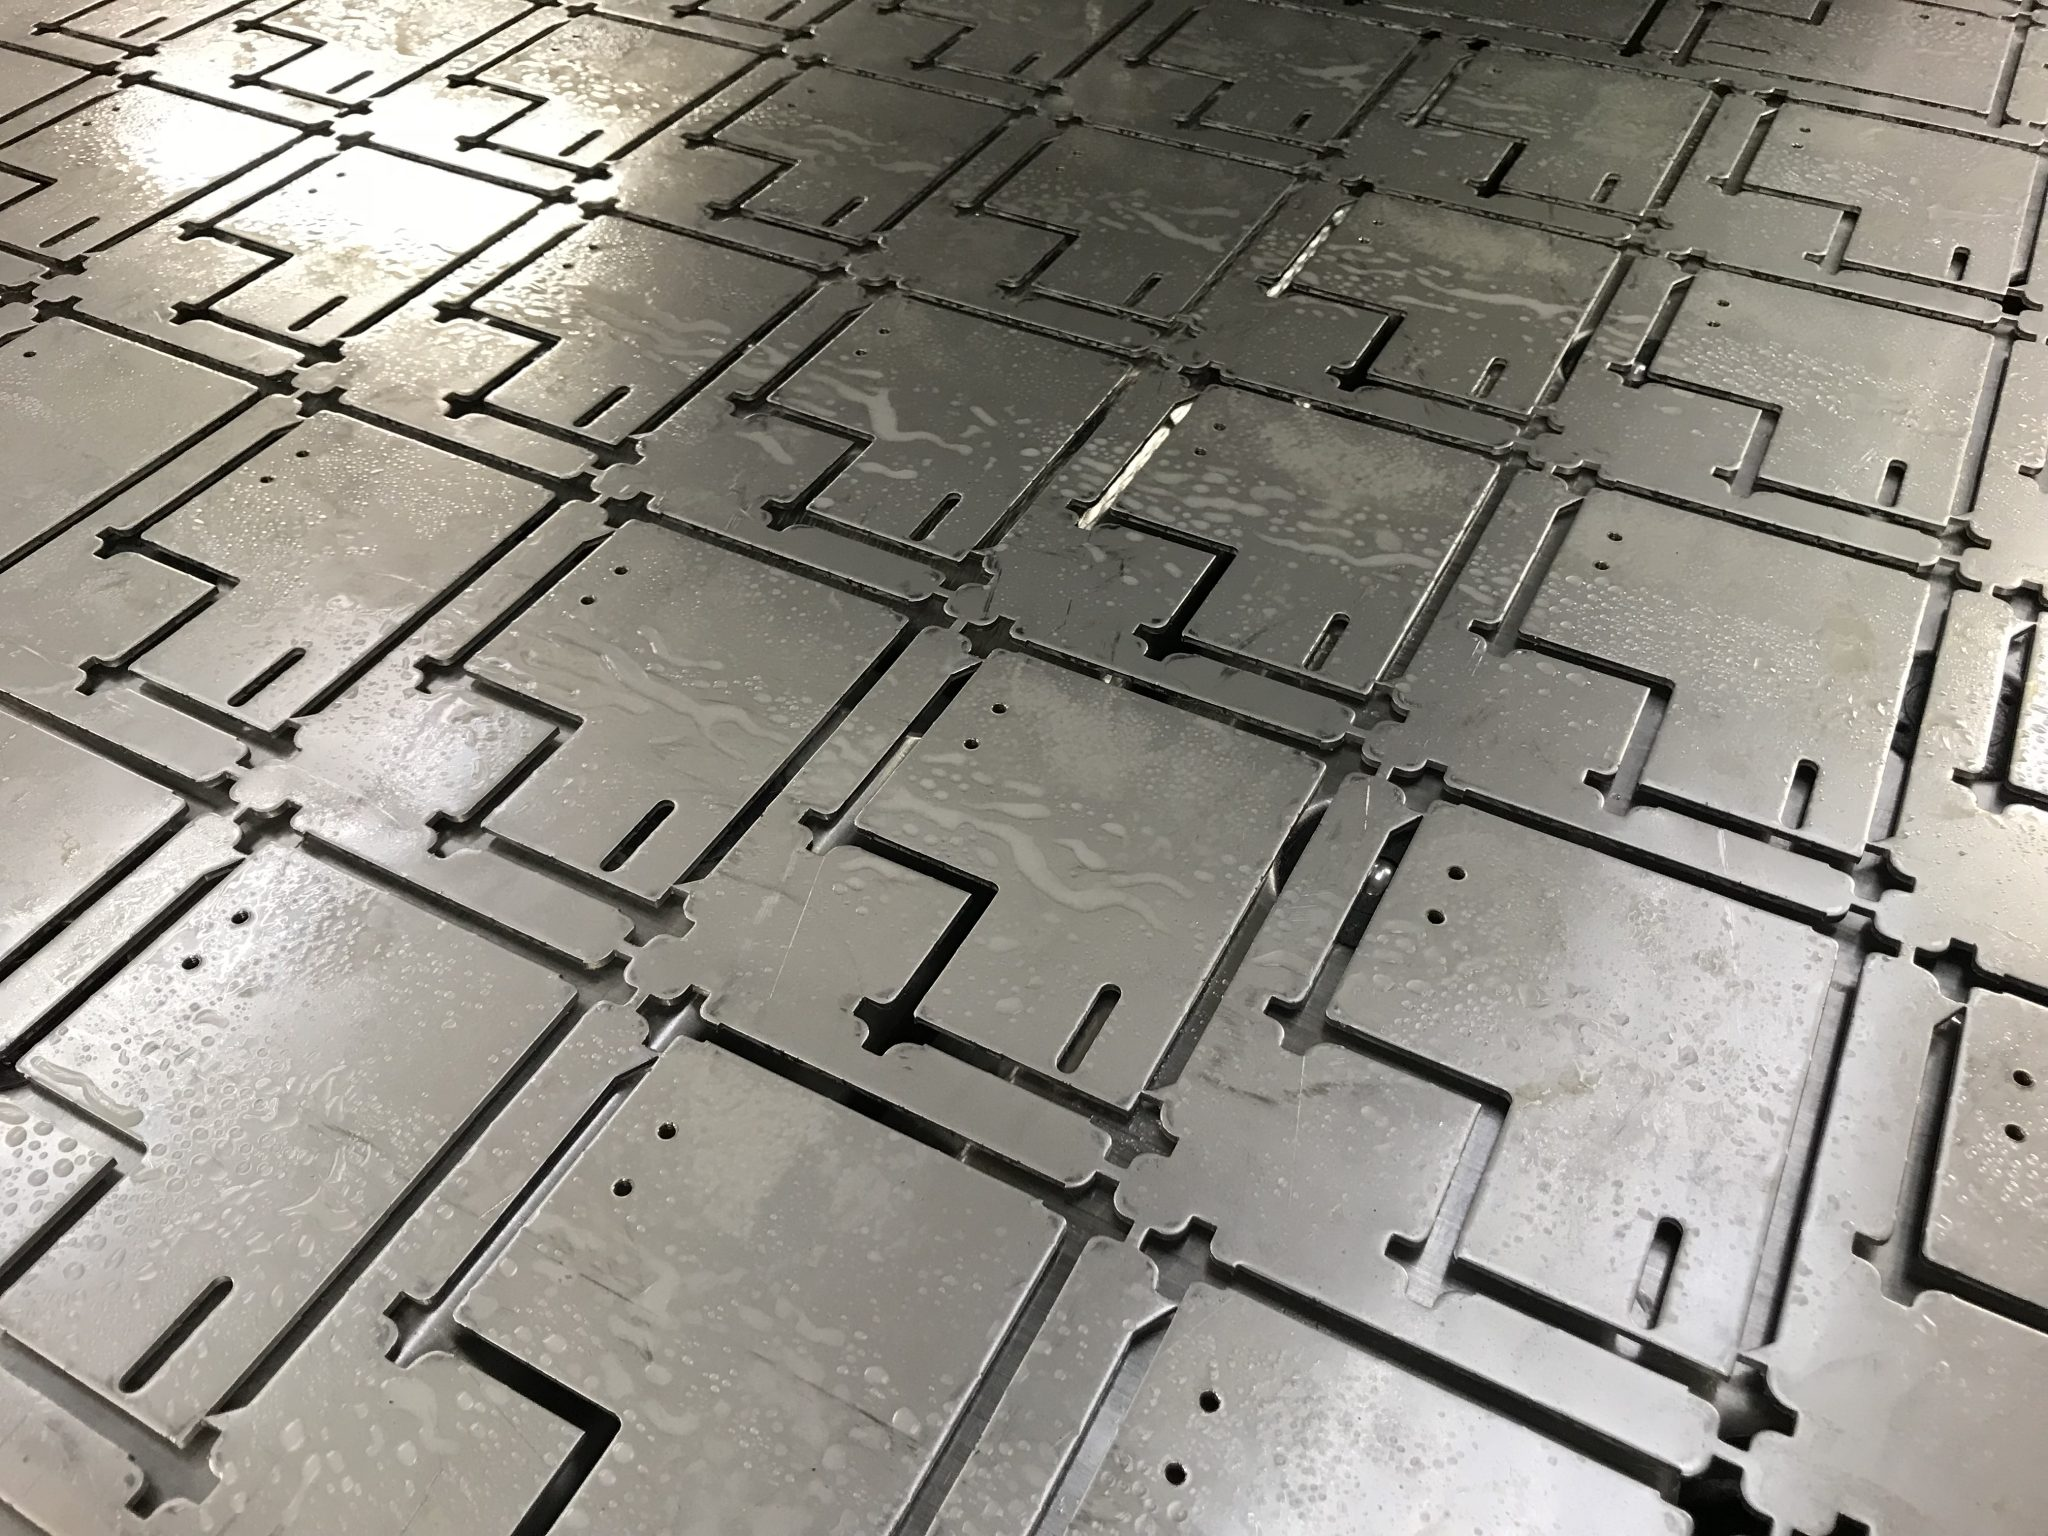 Manufacturing A Sheet Metal Stainless Steel Guide Plate